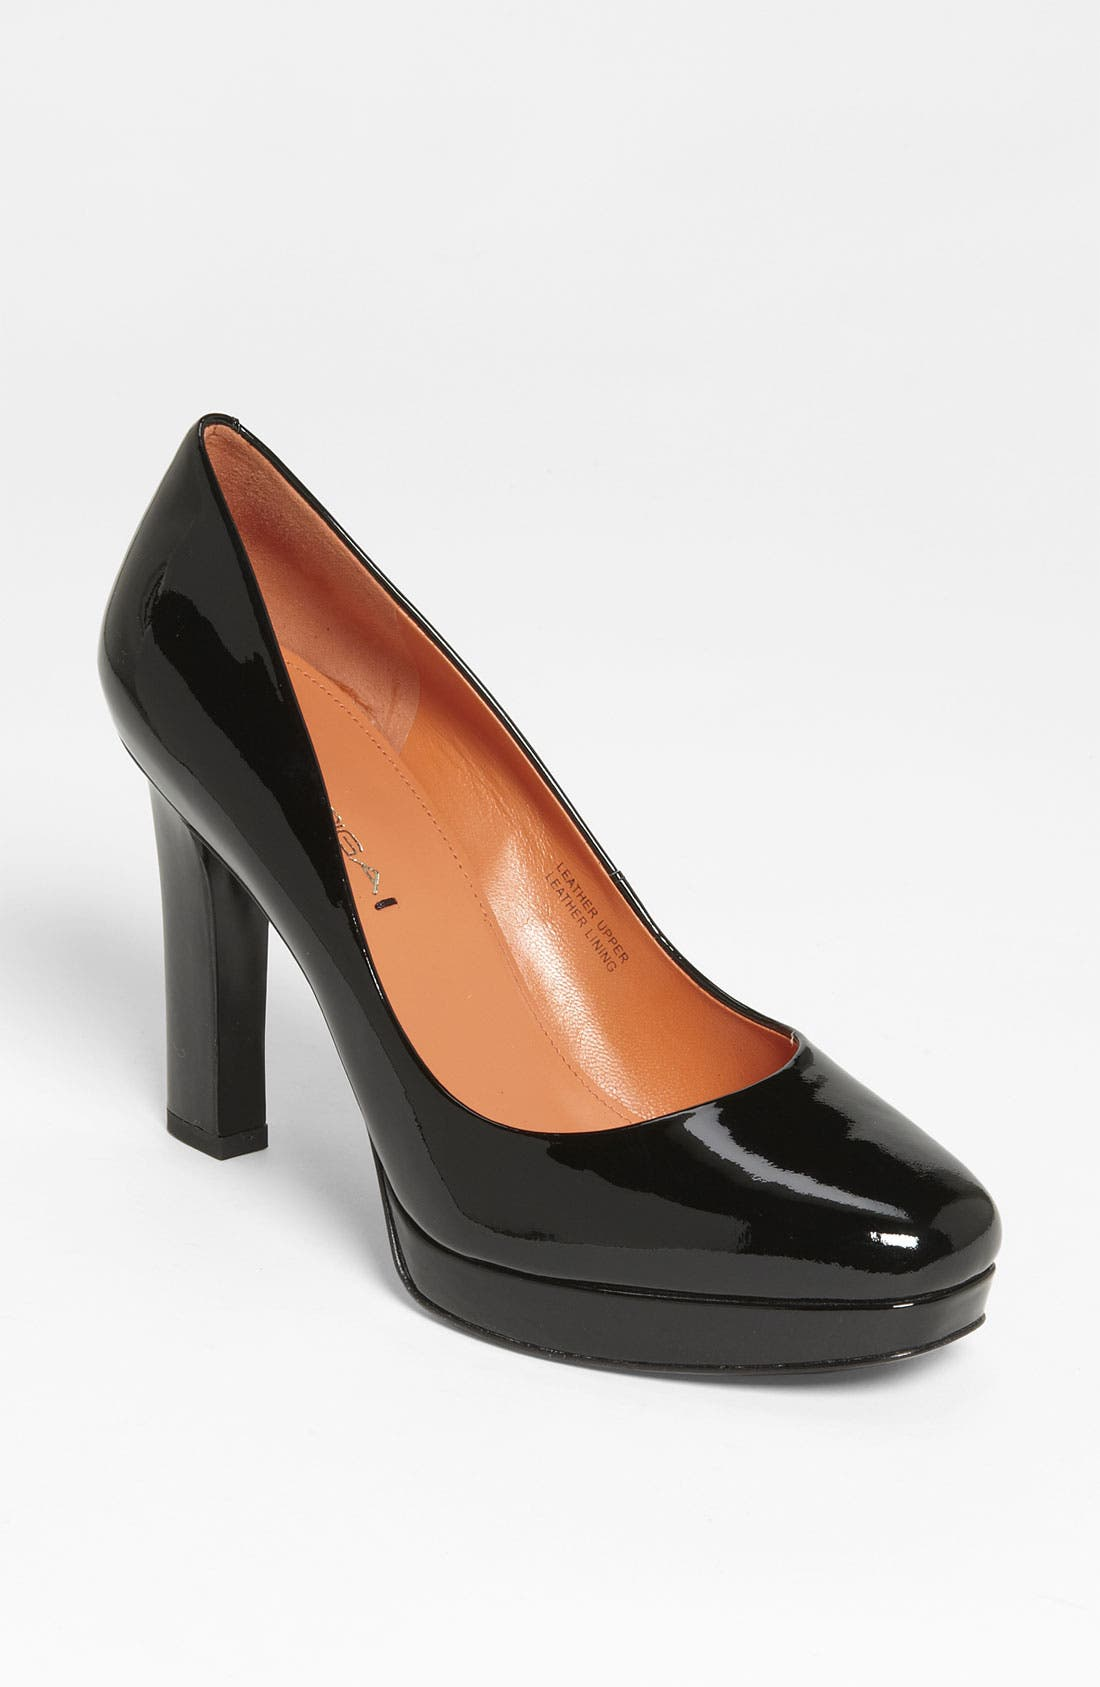 Alternate Image 1 Selected - Via Spiga 'Tasha' Pump